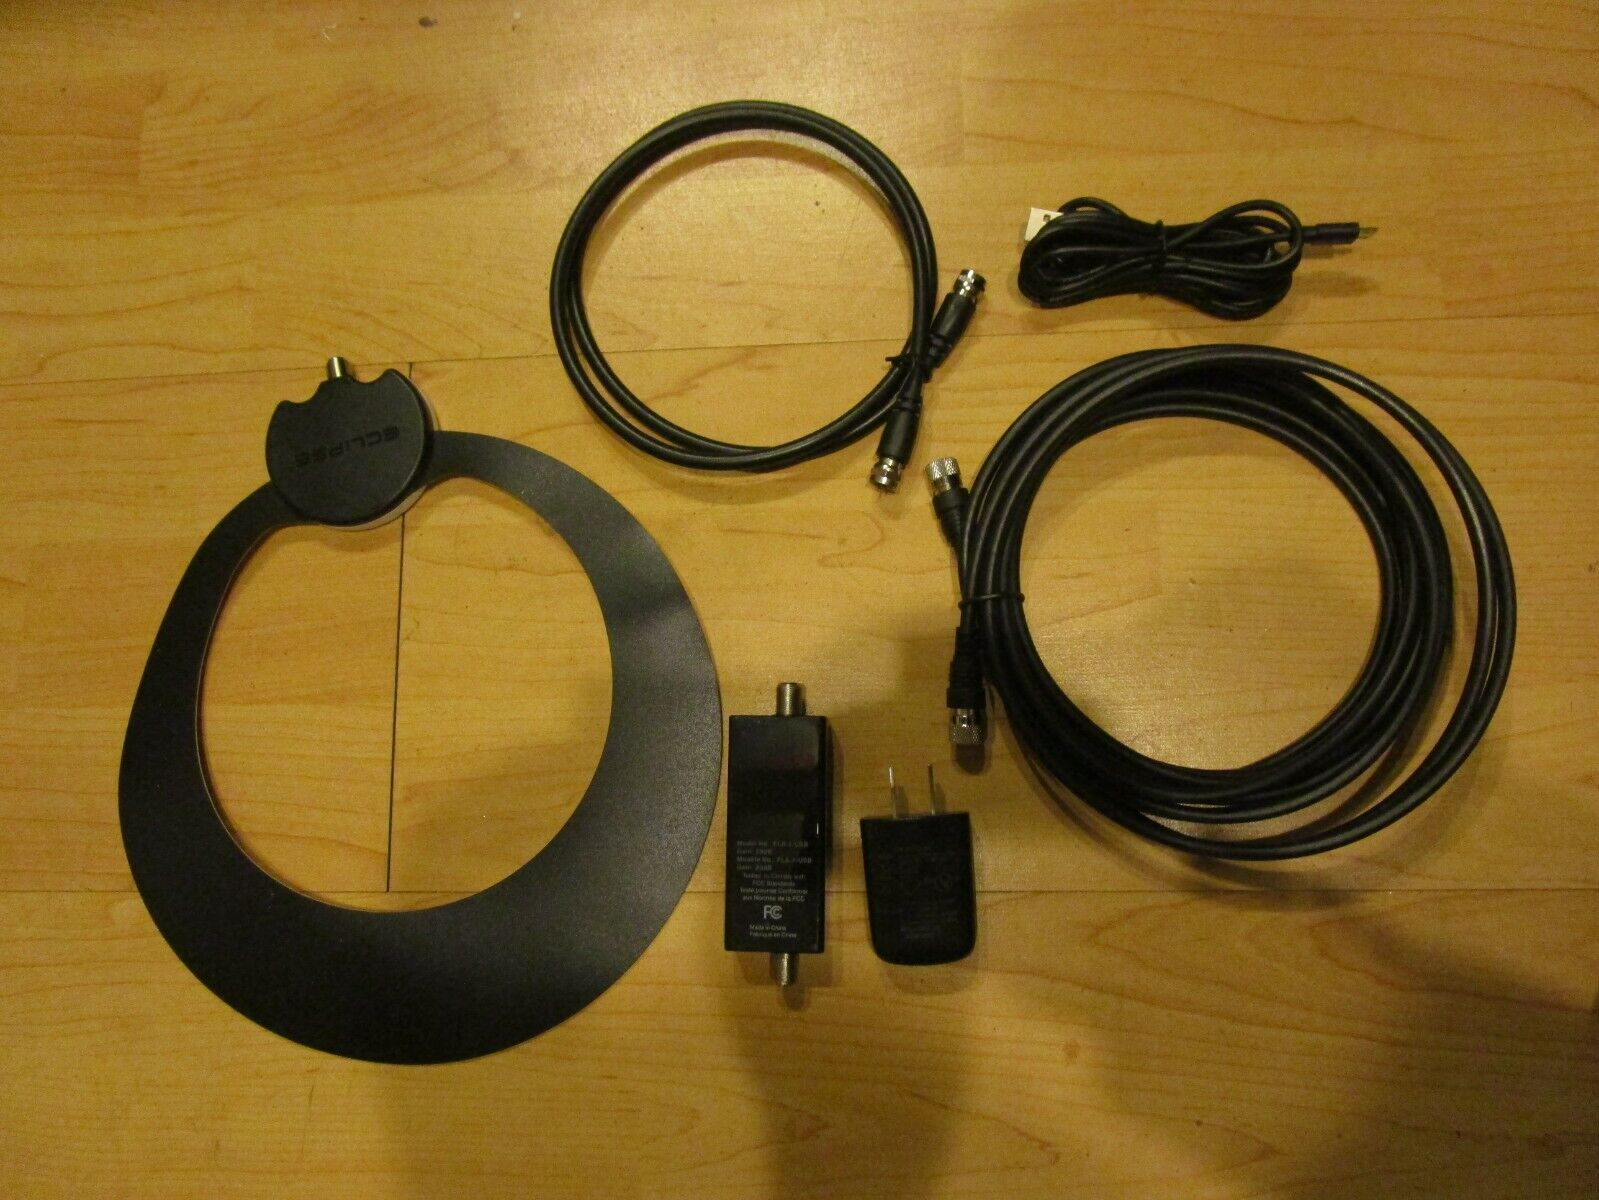 Antennas Direct ClearStream Eclipse Sure Grip Amplified Indoor HDTV Antenna. Available Now for 24.00